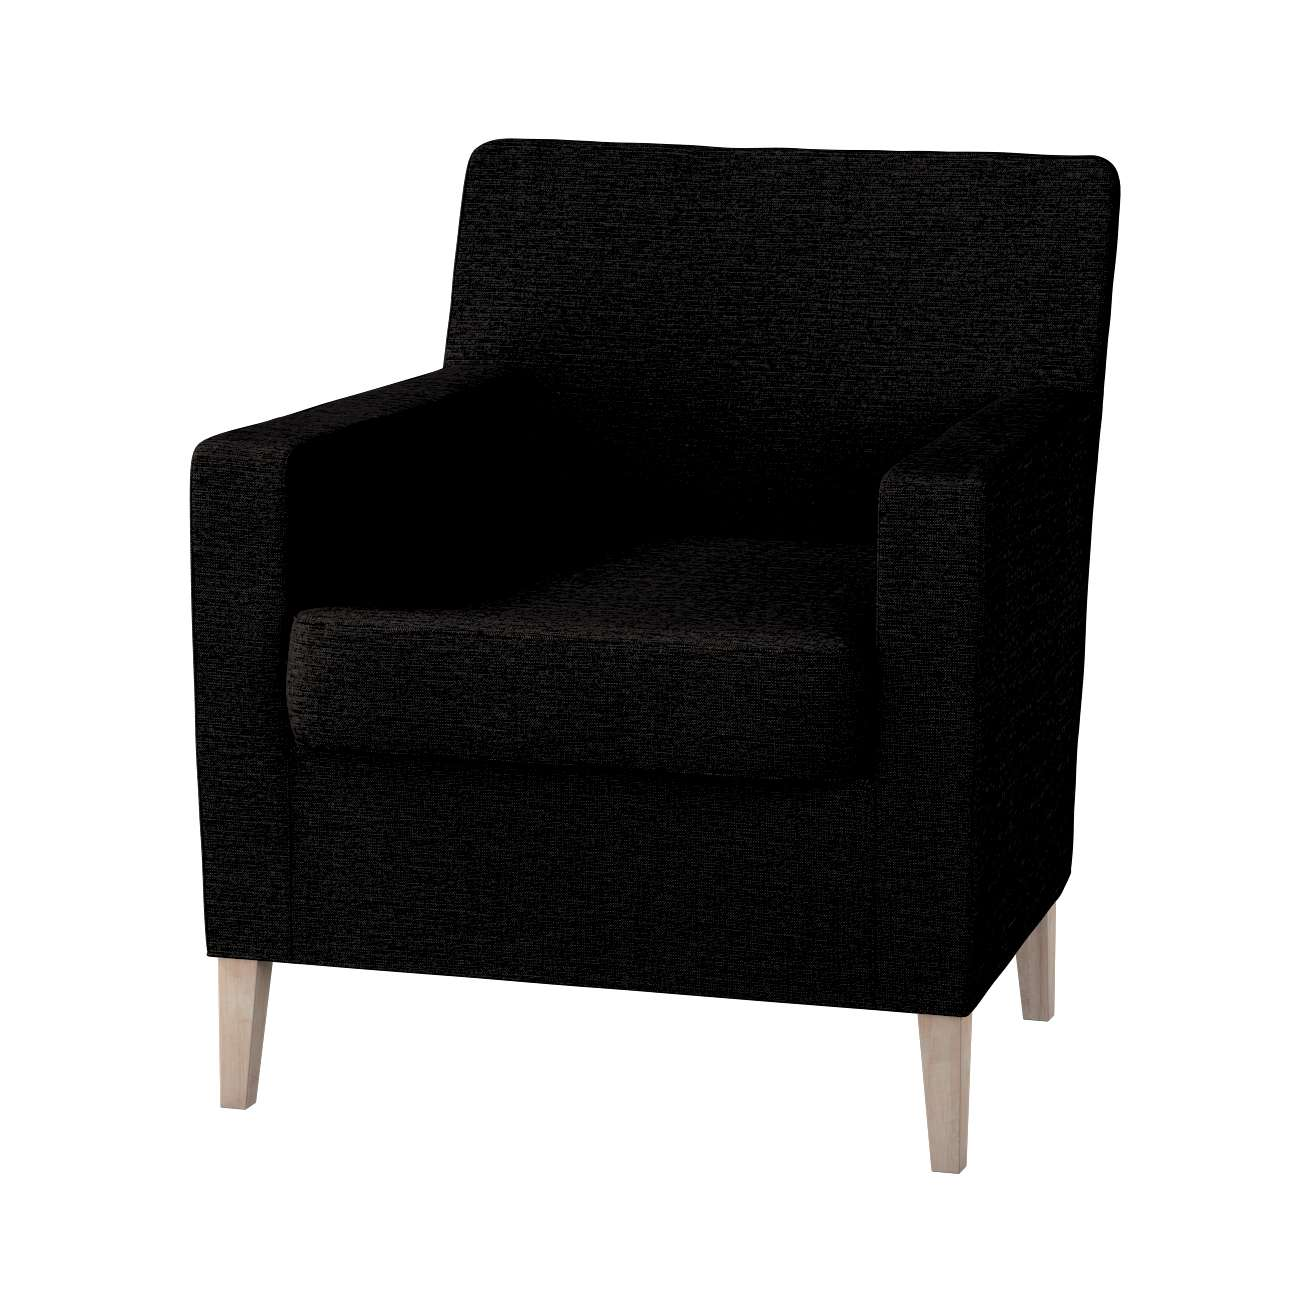 Karlstad tall chair cover Karlstad armchair cover in collection Madrid, fabric: 105-17